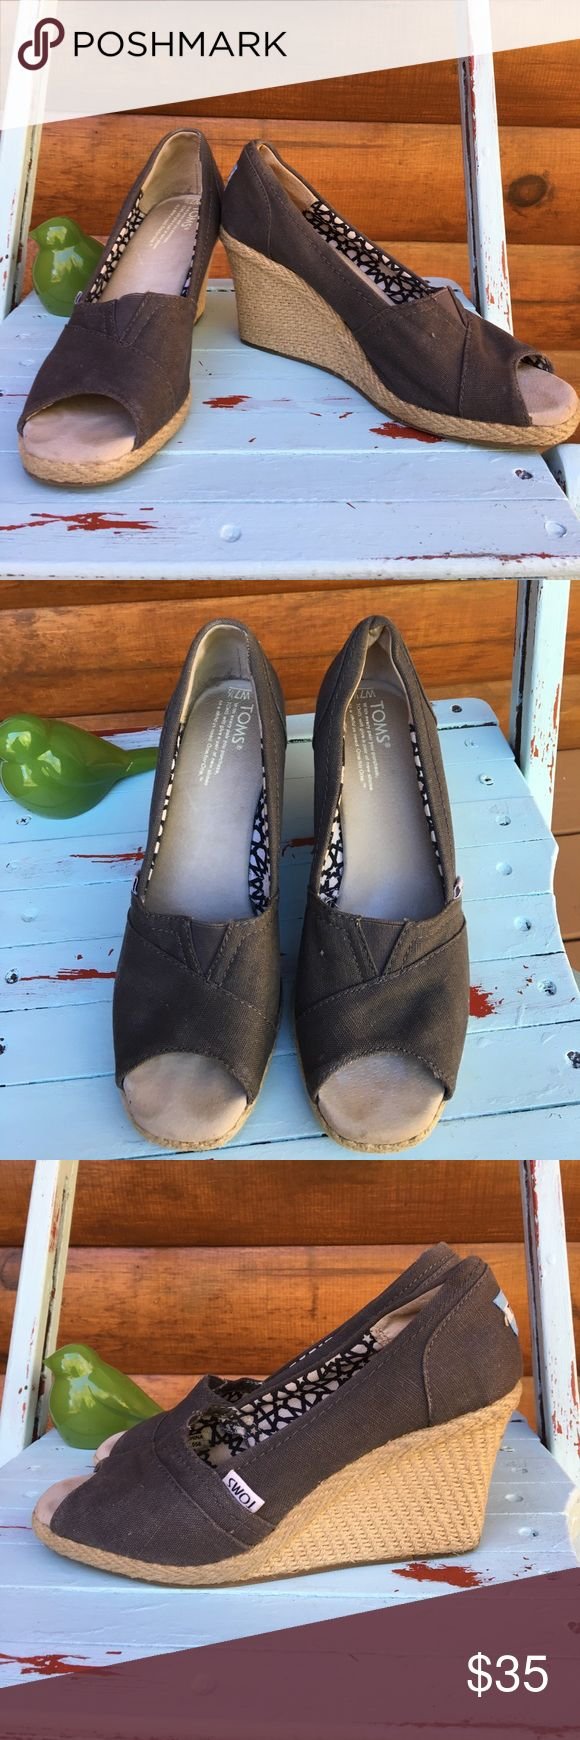 Gray Toms wedges Preloved but in great used condition Toms Shoes Wedges